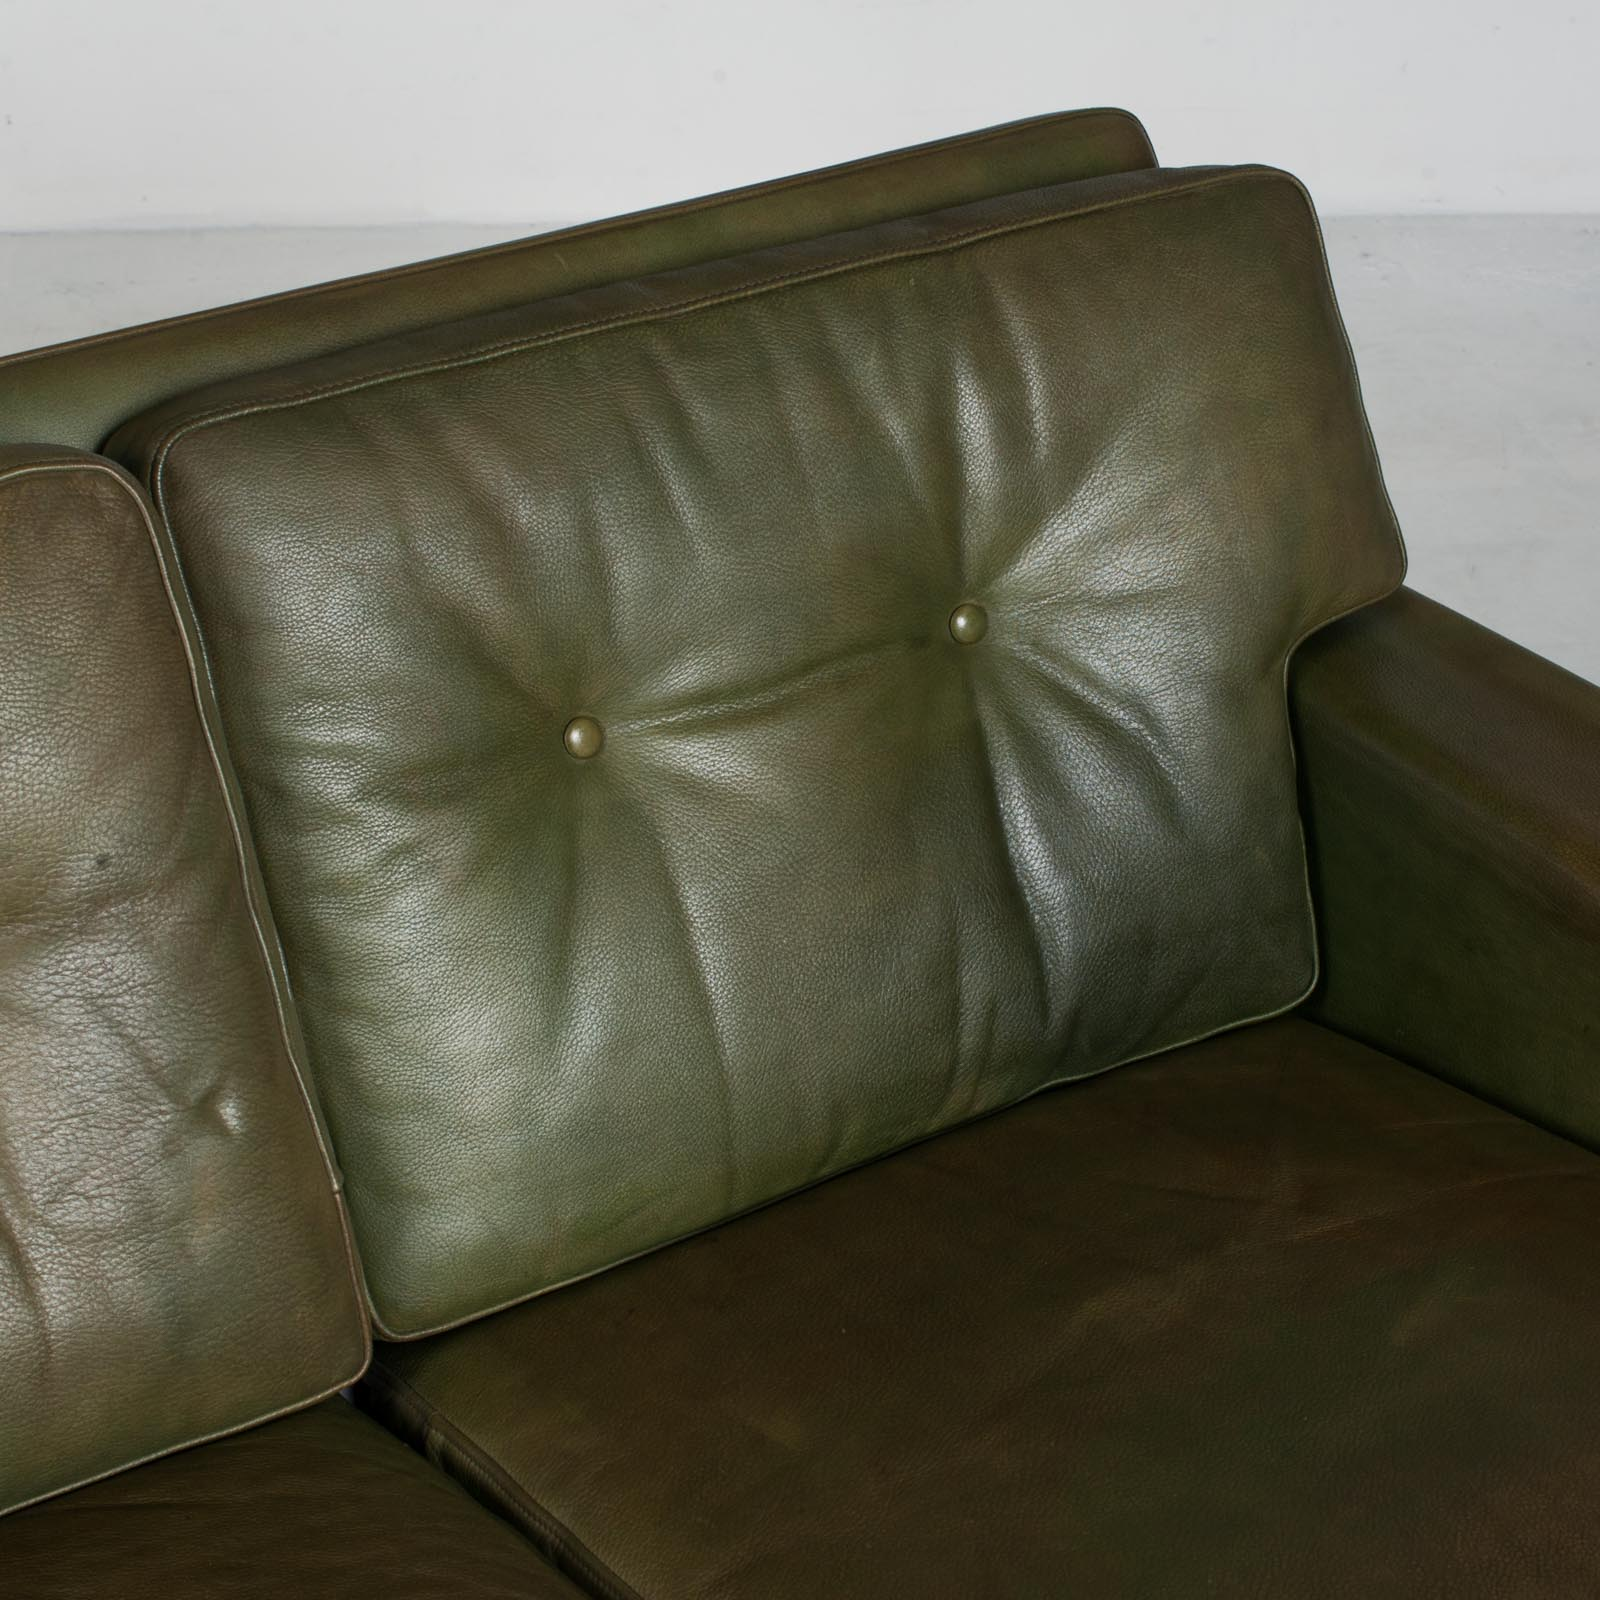 4 Seat Sofa In Olive Leather 1960s Denmark 08